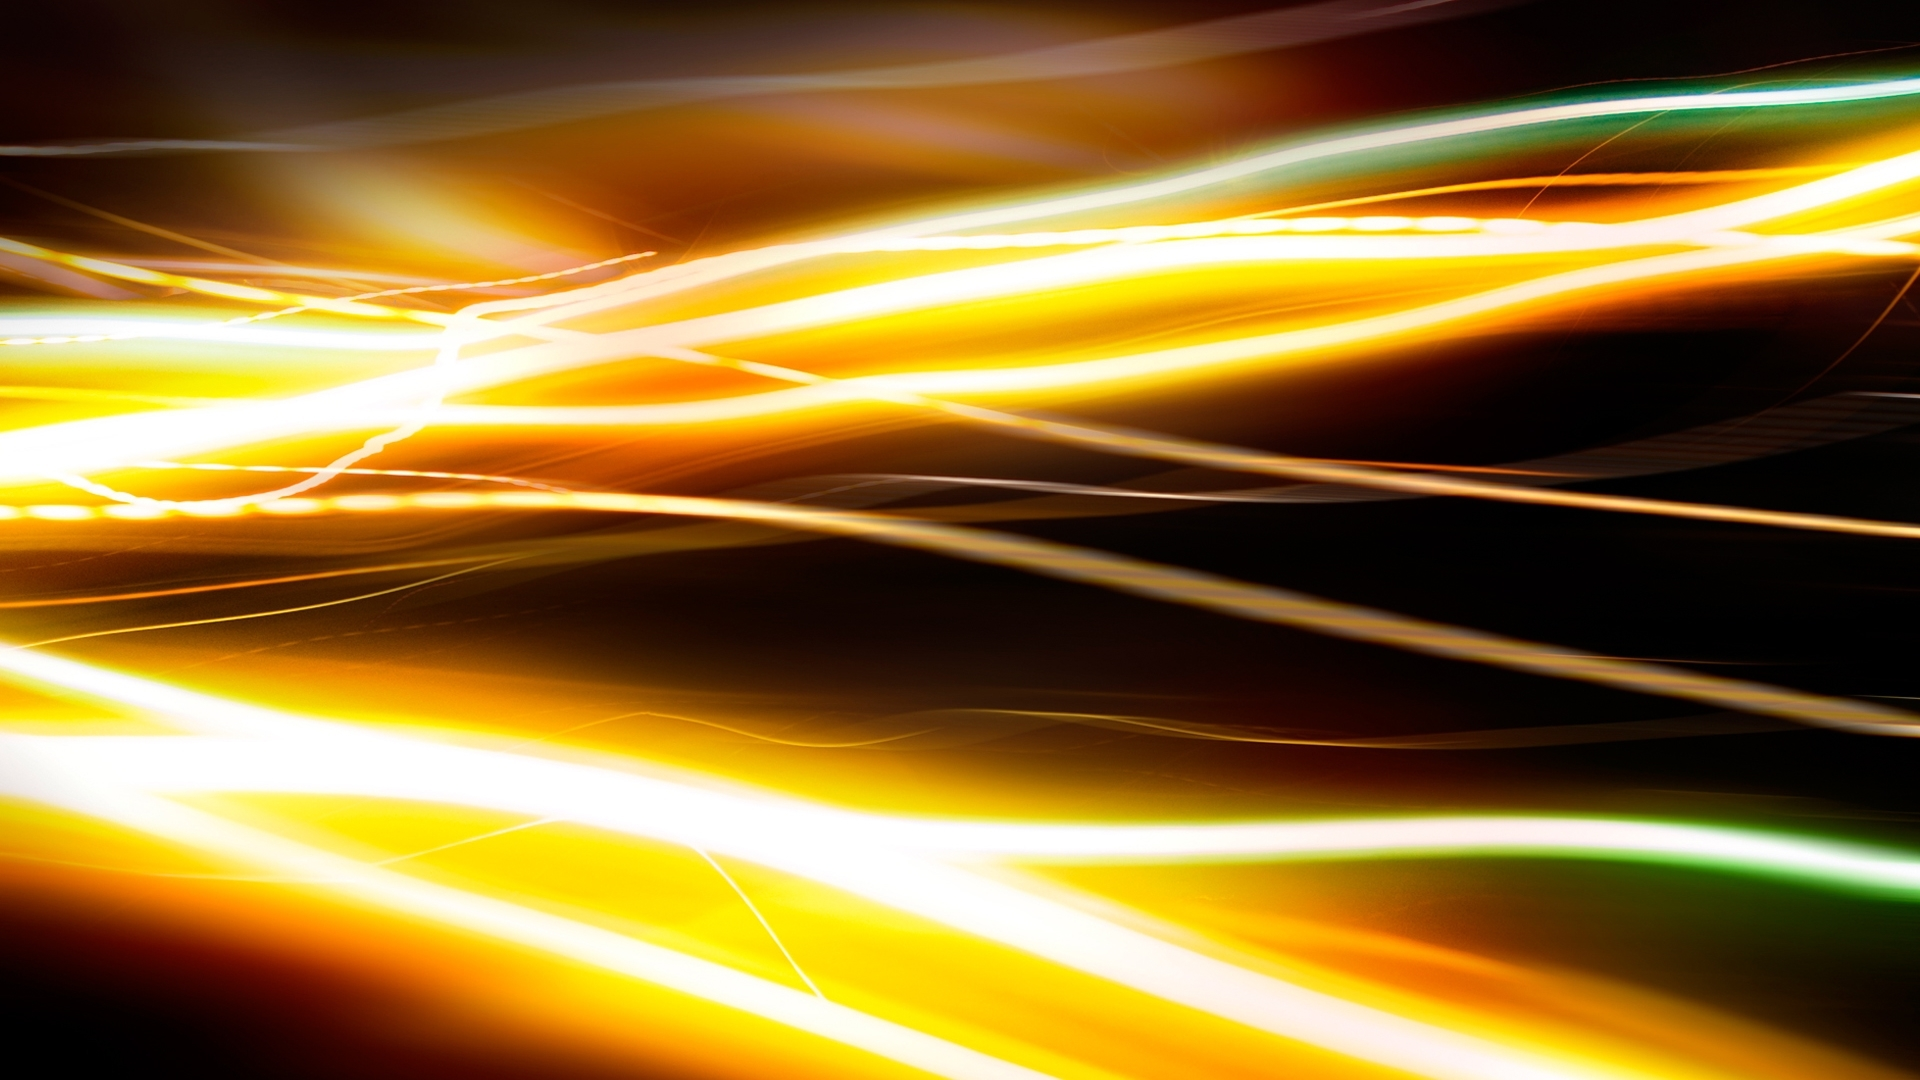 Yellow And Green Streaks Of Light Abstract